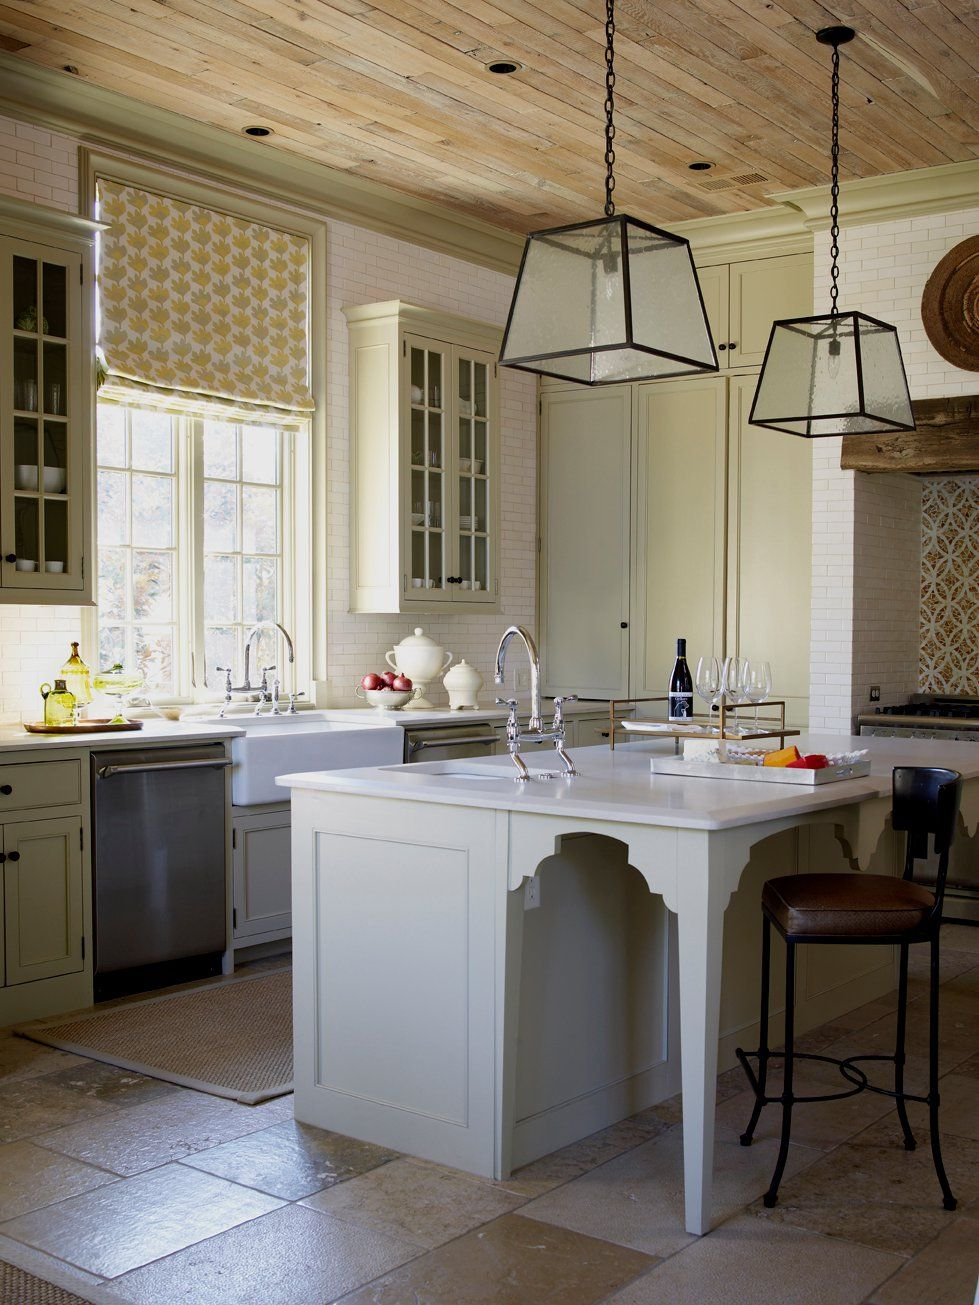 Island, Pendants, Unfinished Wood Ceiling, Floating Upper Cabinets,  Farmhouse Sink, Bridge